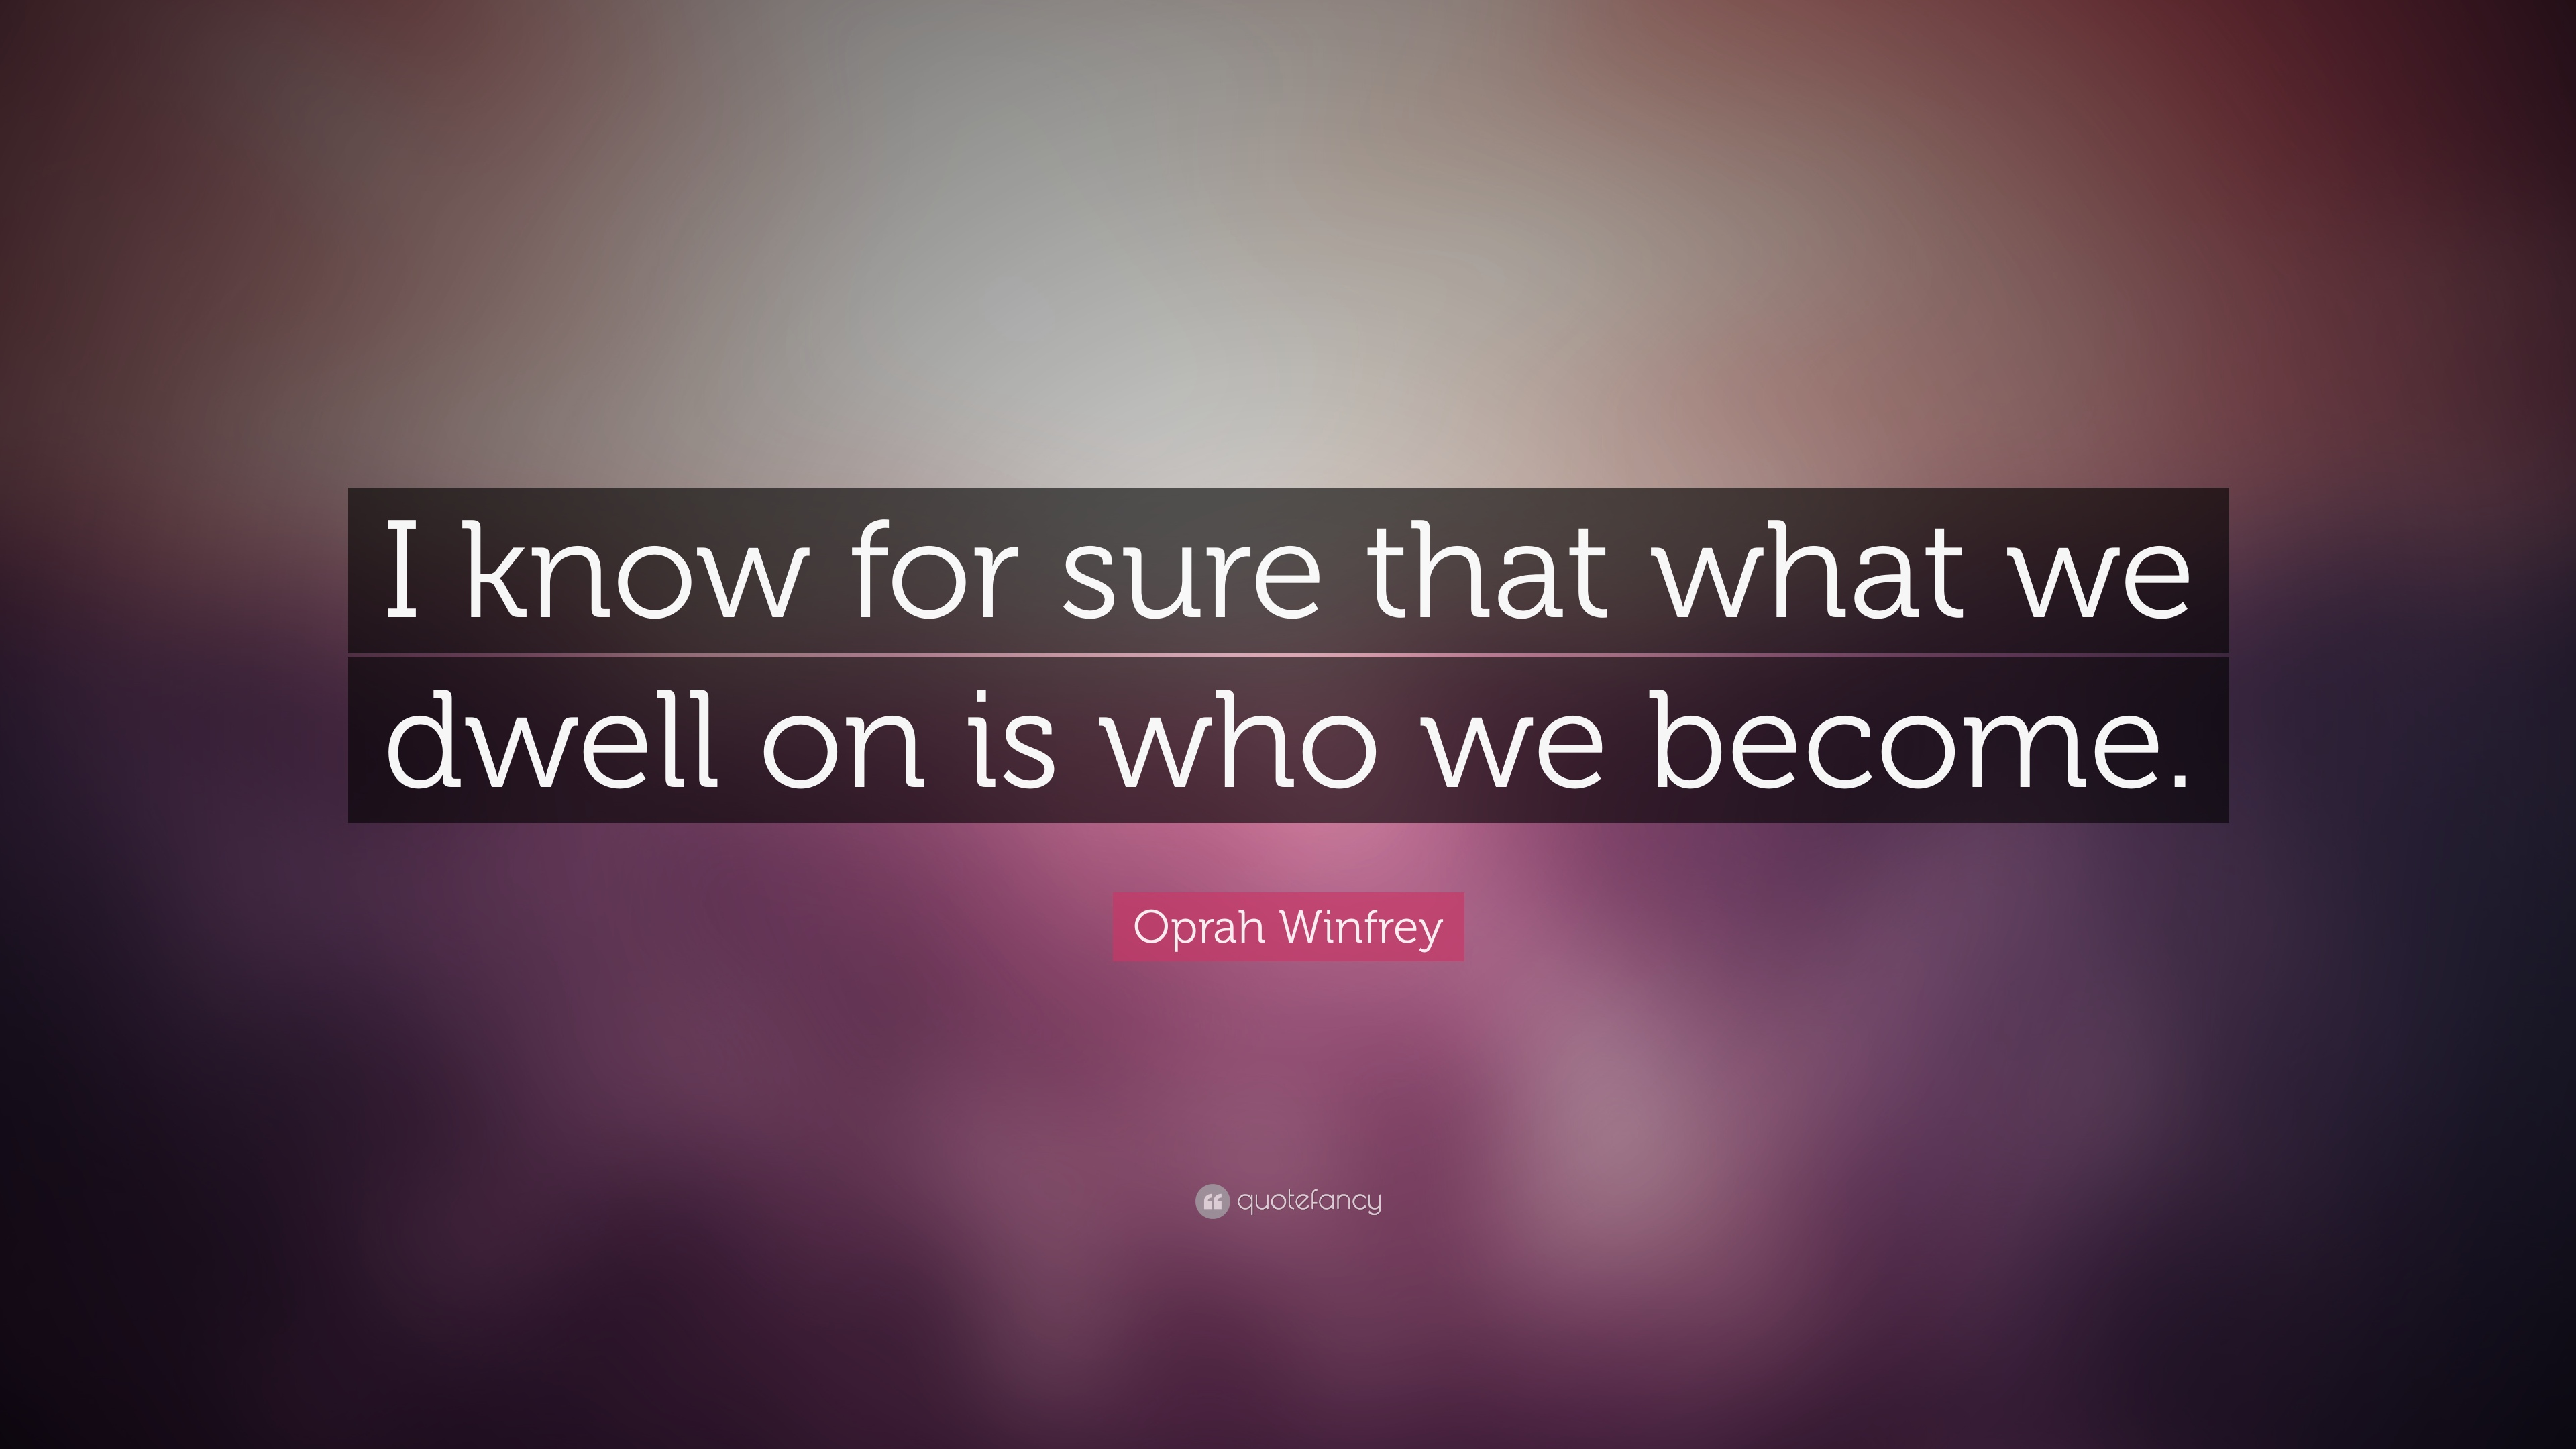 Proud To Be An American Essay Oprah Winfrey Quote I Know For Sure That What We Dwell On Is Who Aristotle Essay also Inspector Calls Essay Oprah Winfrey Quote I Know For Sure That What We Dwell On Is Who  Business Essay Topics